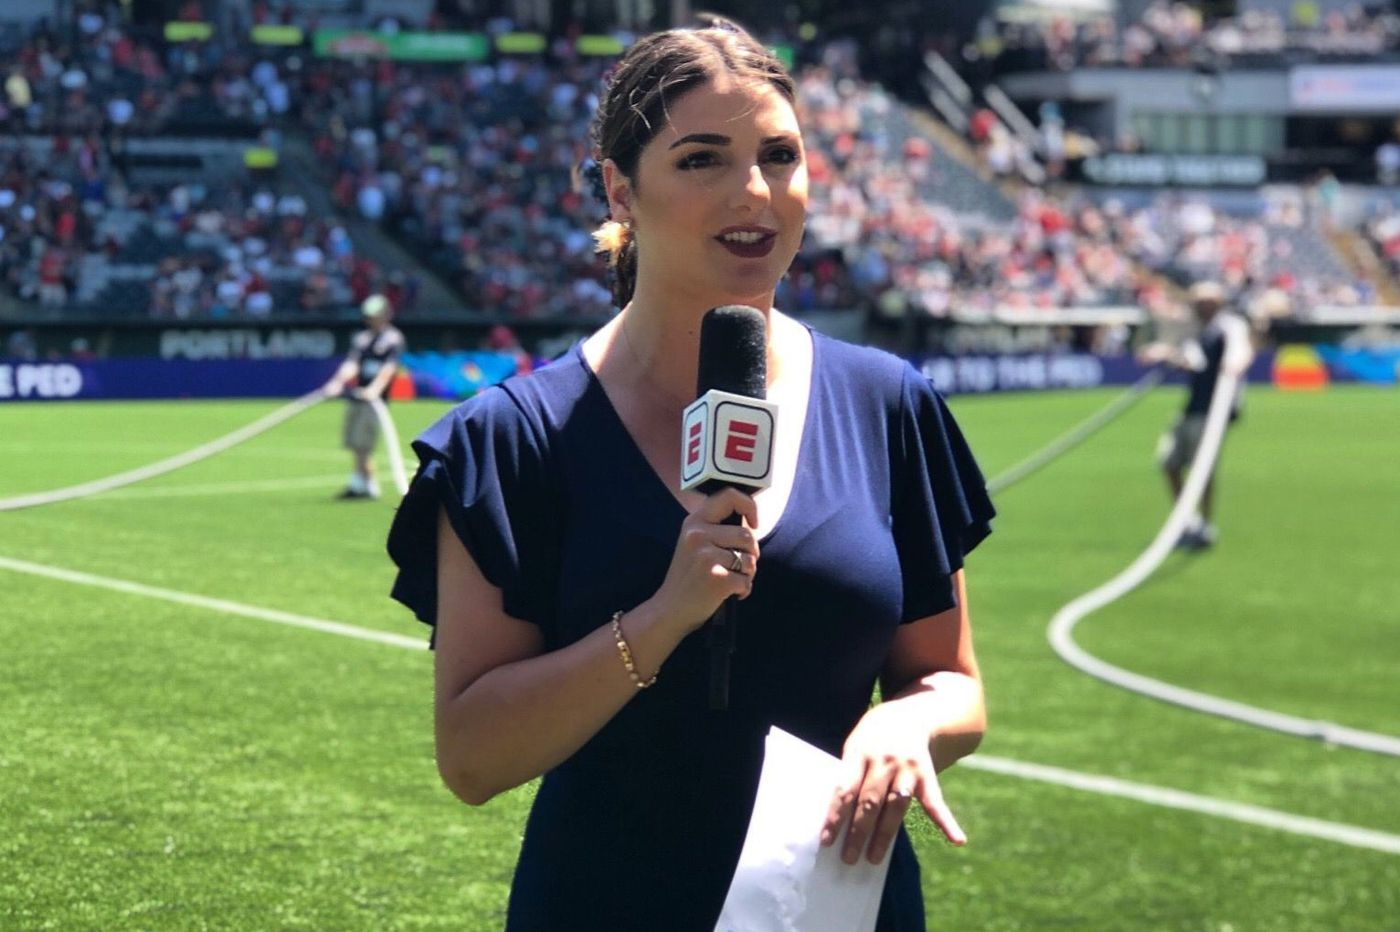 Marisa Pilla Goes from Philadelphia Union TV Host to National Stage